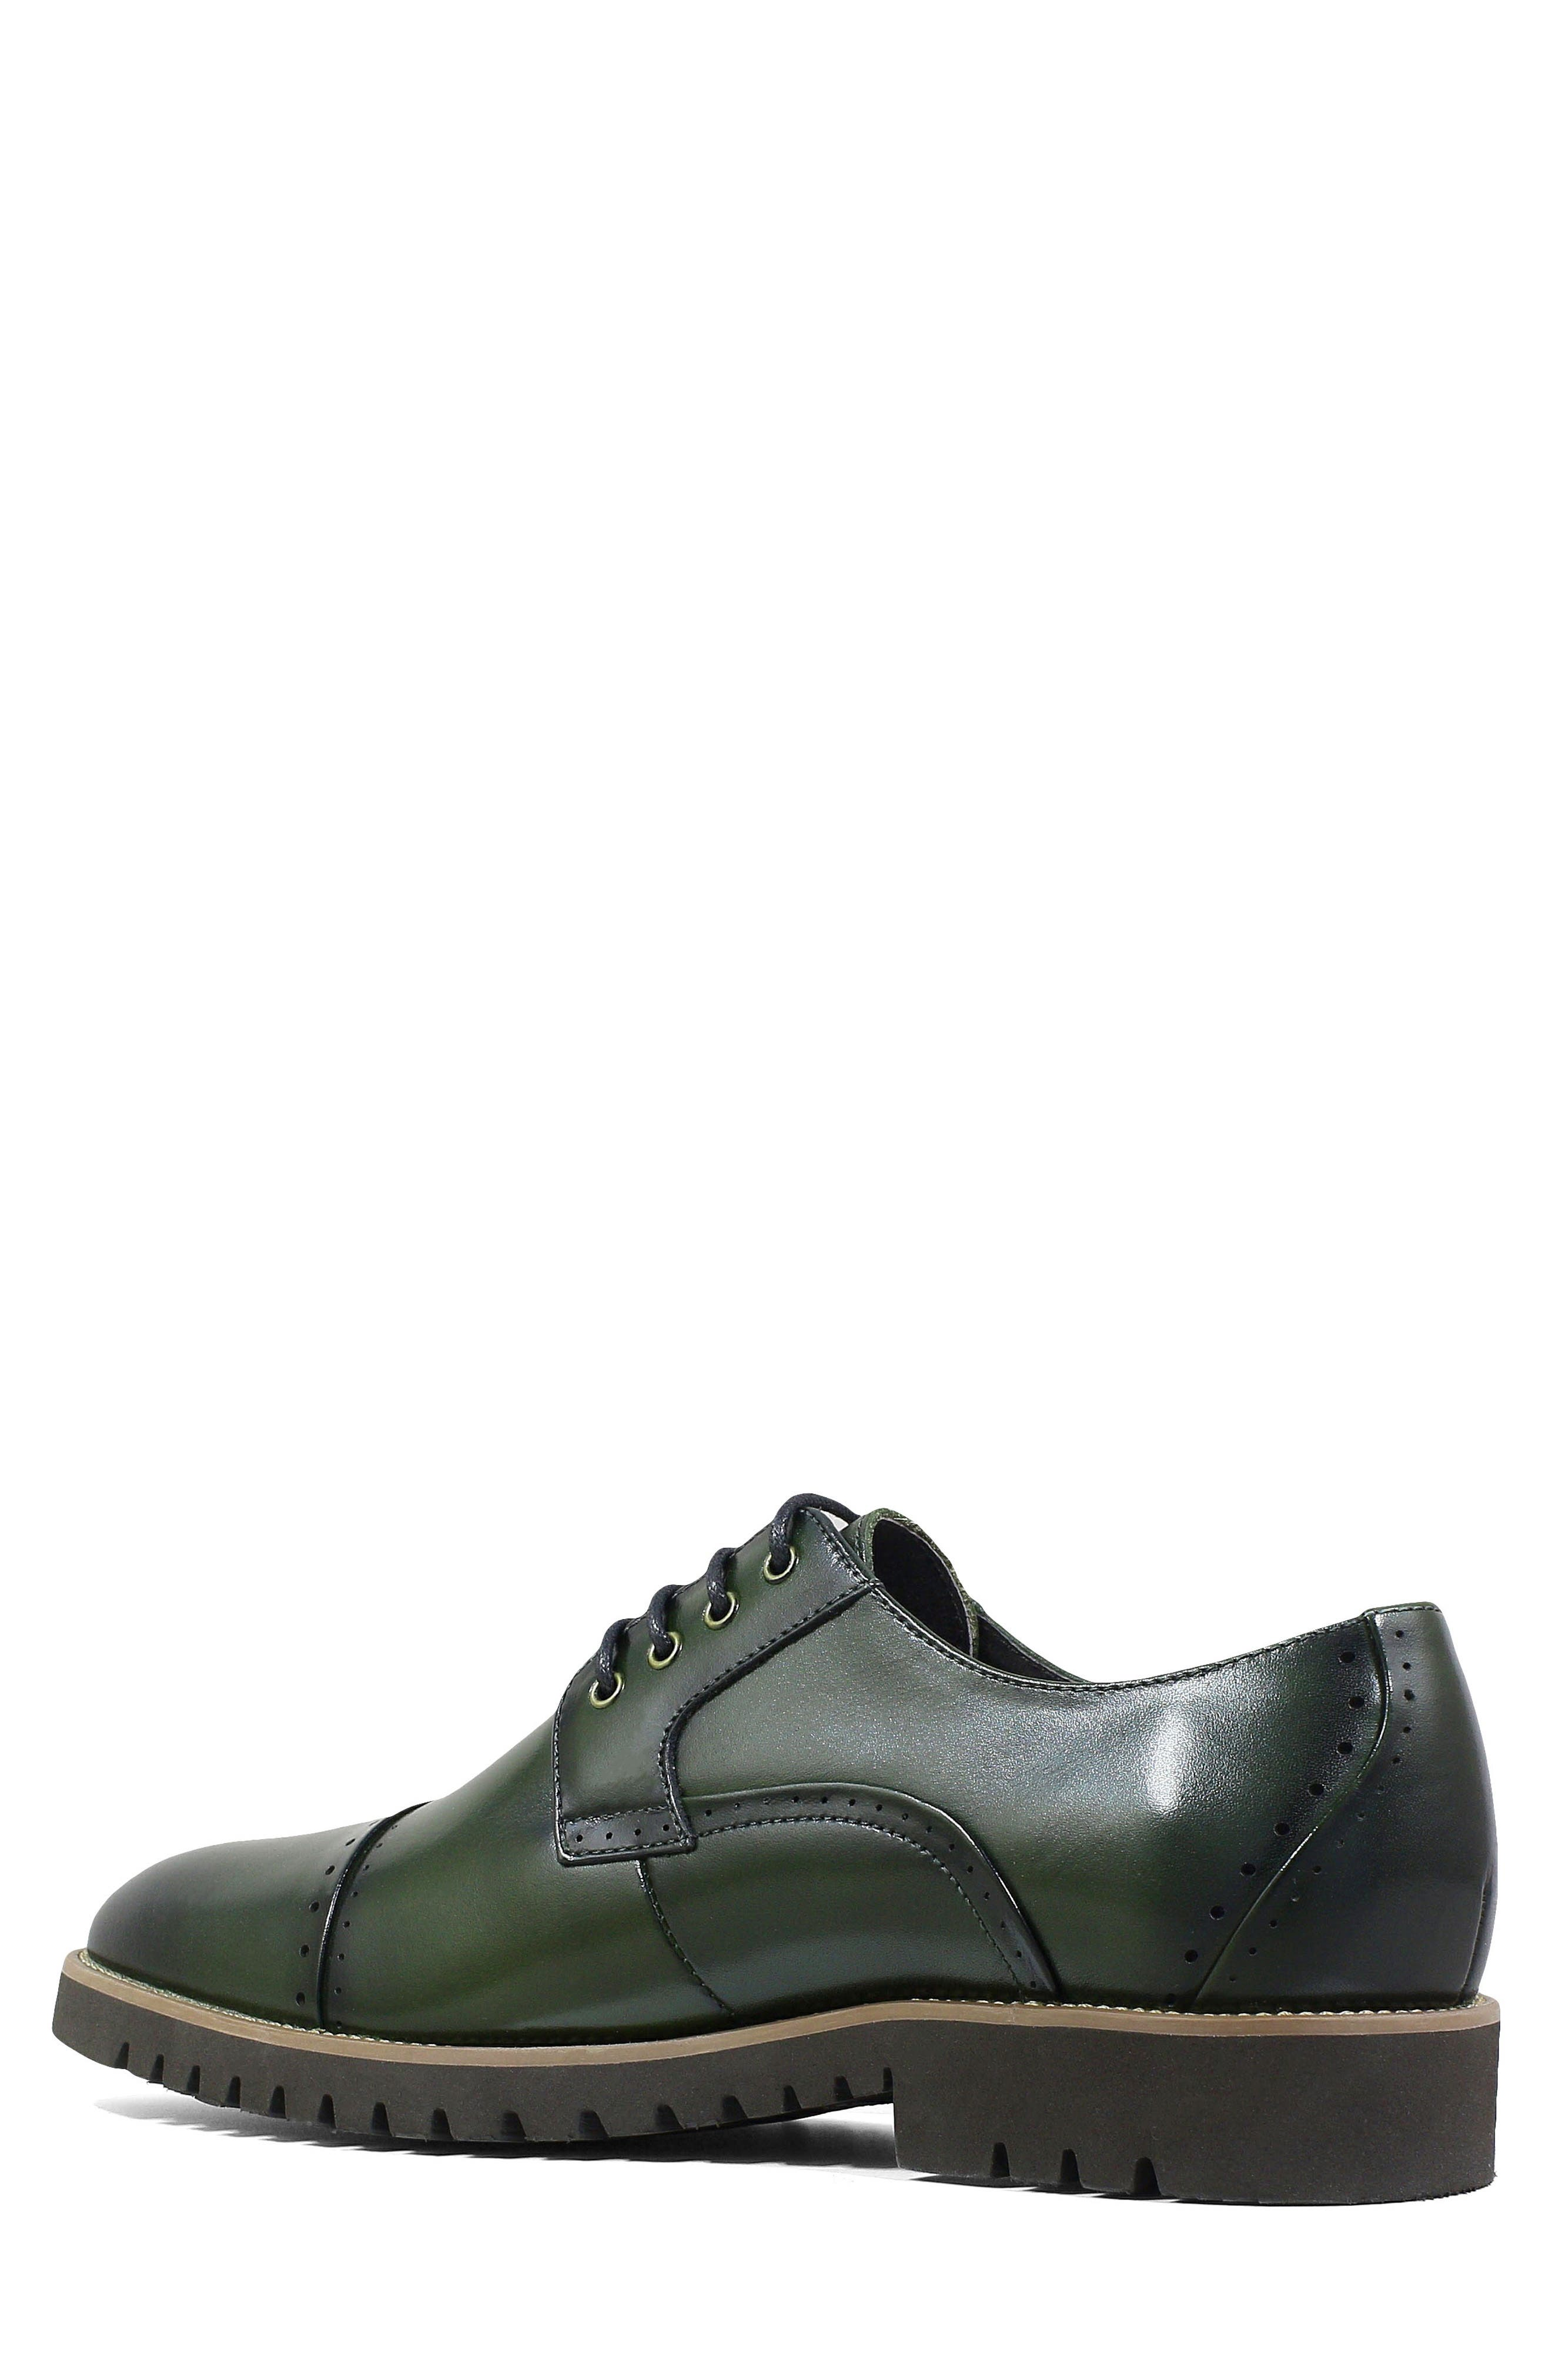 Barcliff Cap Toe Derby,                             Alternate thumbnail 2, color,                             CARGO GREEN LEATHER